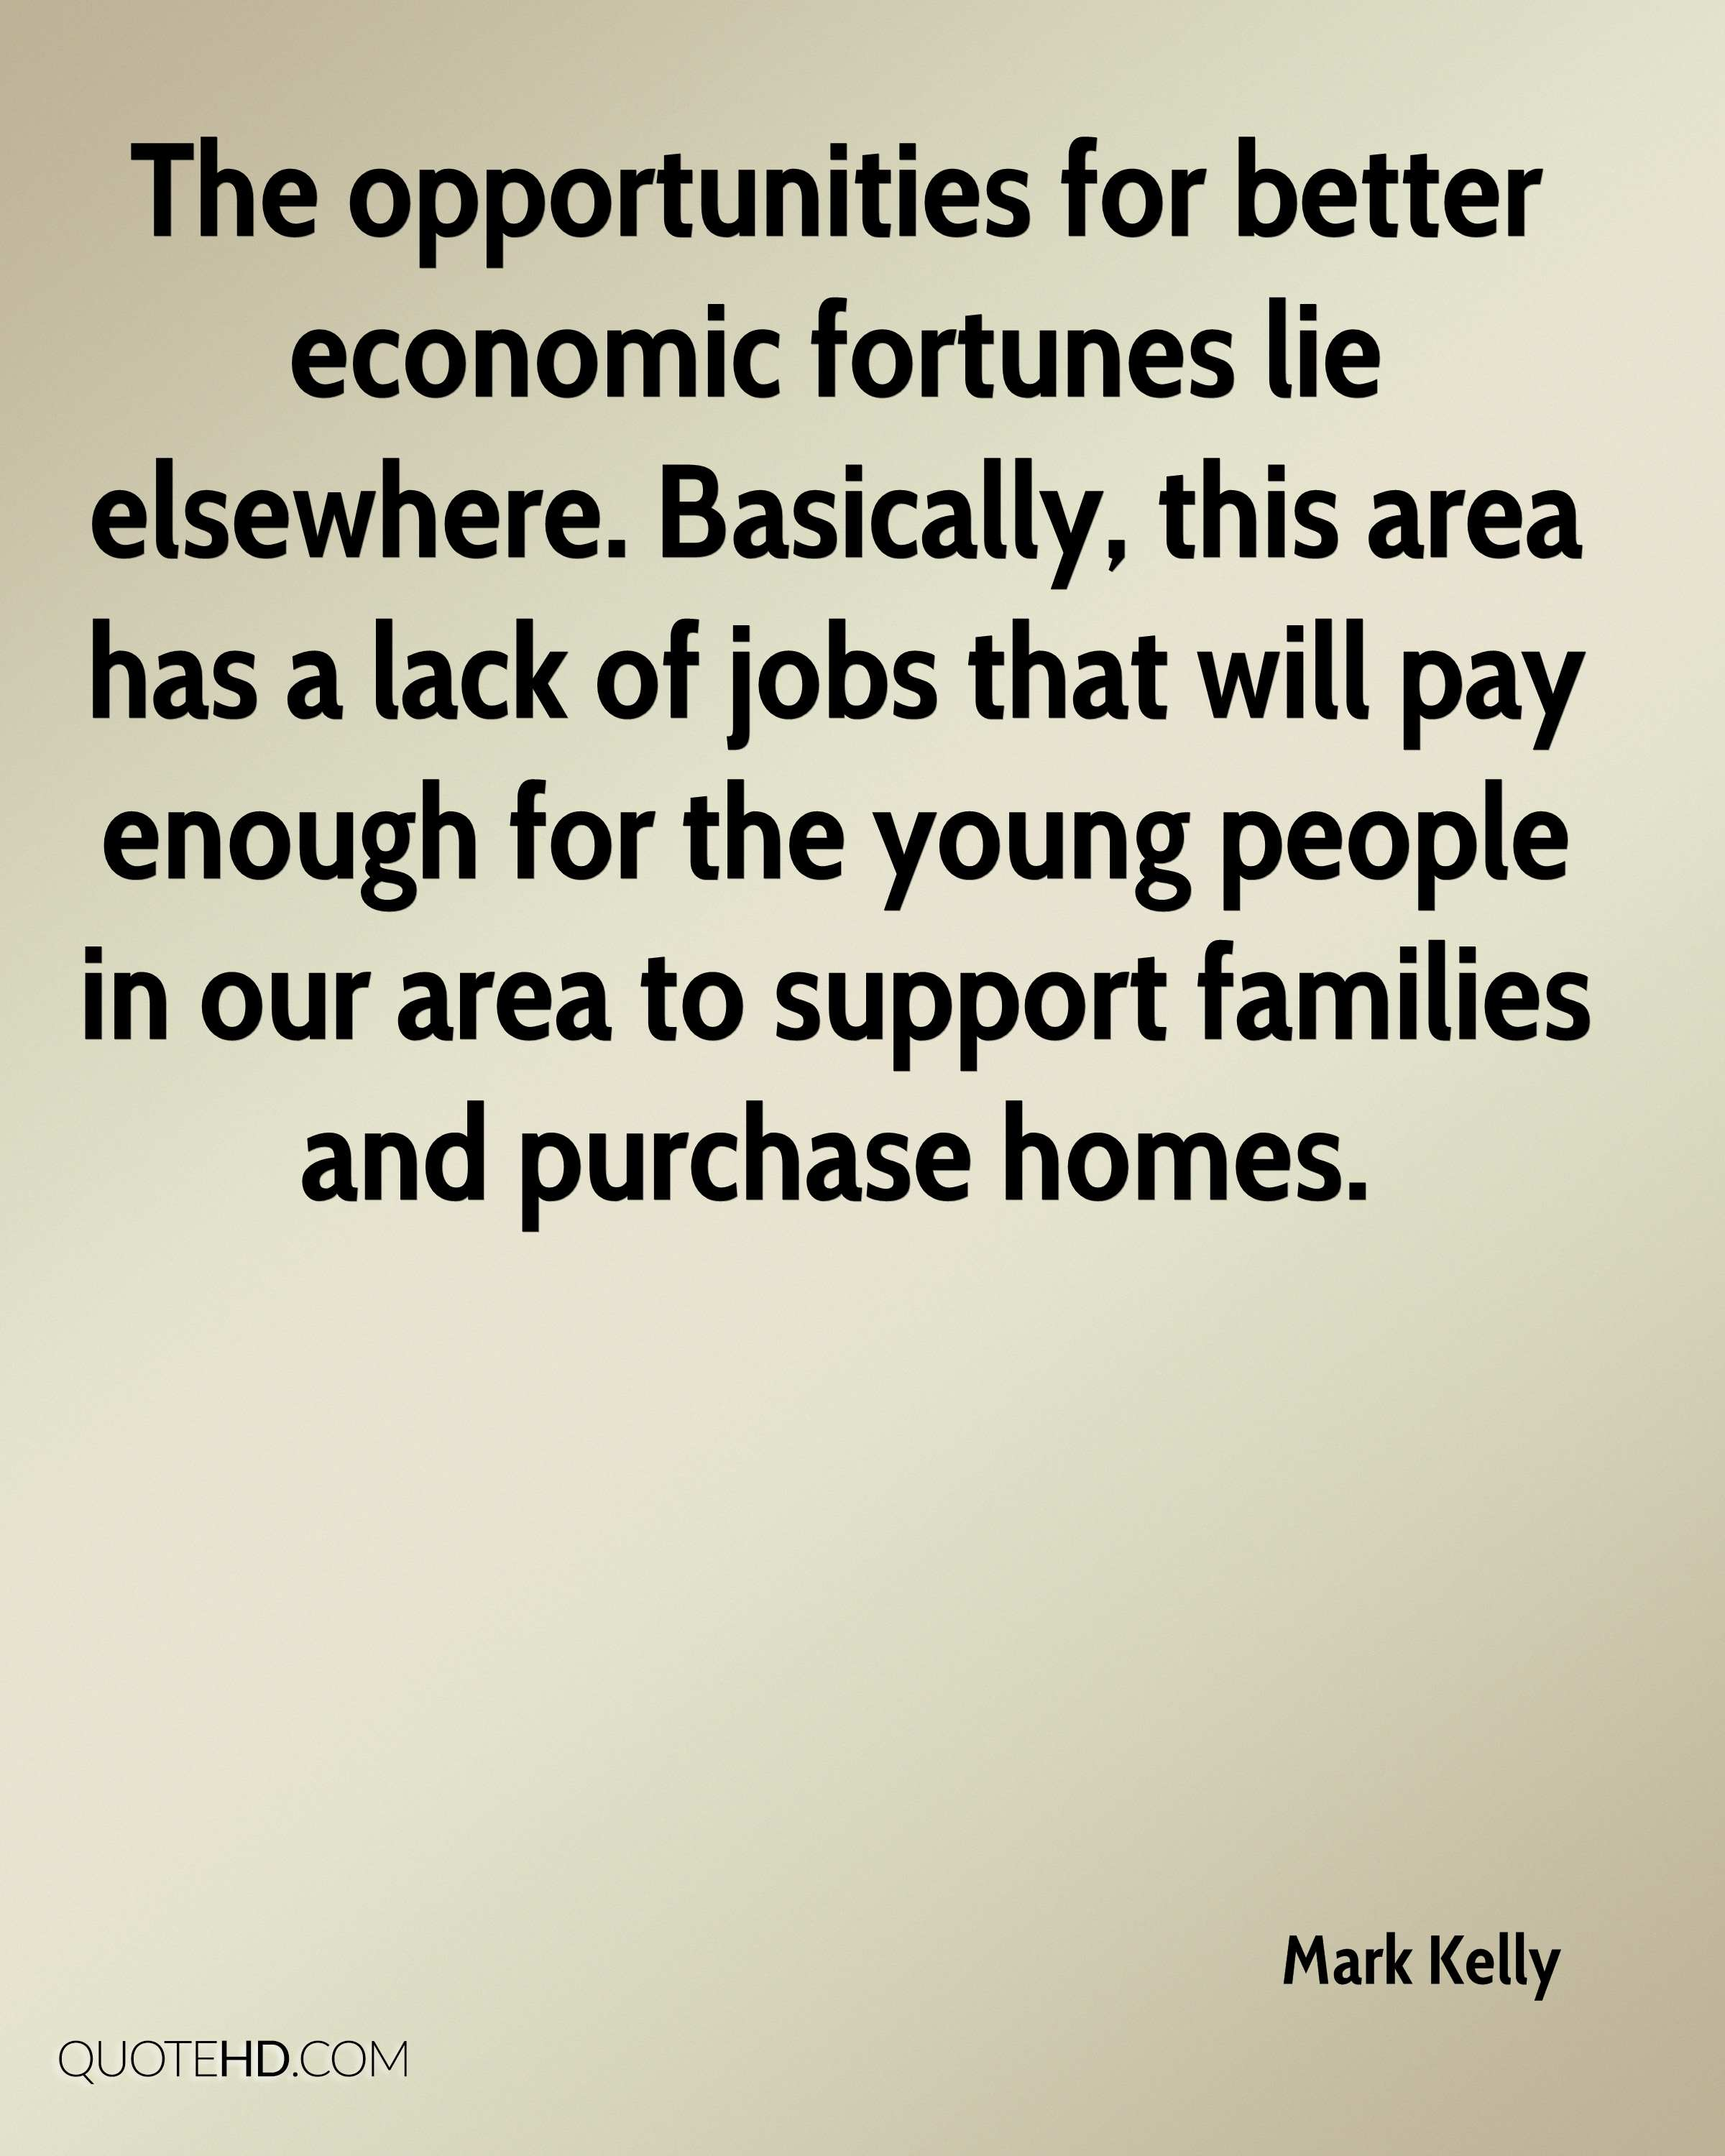 The opportunities for better economic fortunes lie elsewhere. Basically, this area has a lack of jobs that will pay enough for the young people in our area to support families and purchase homes.